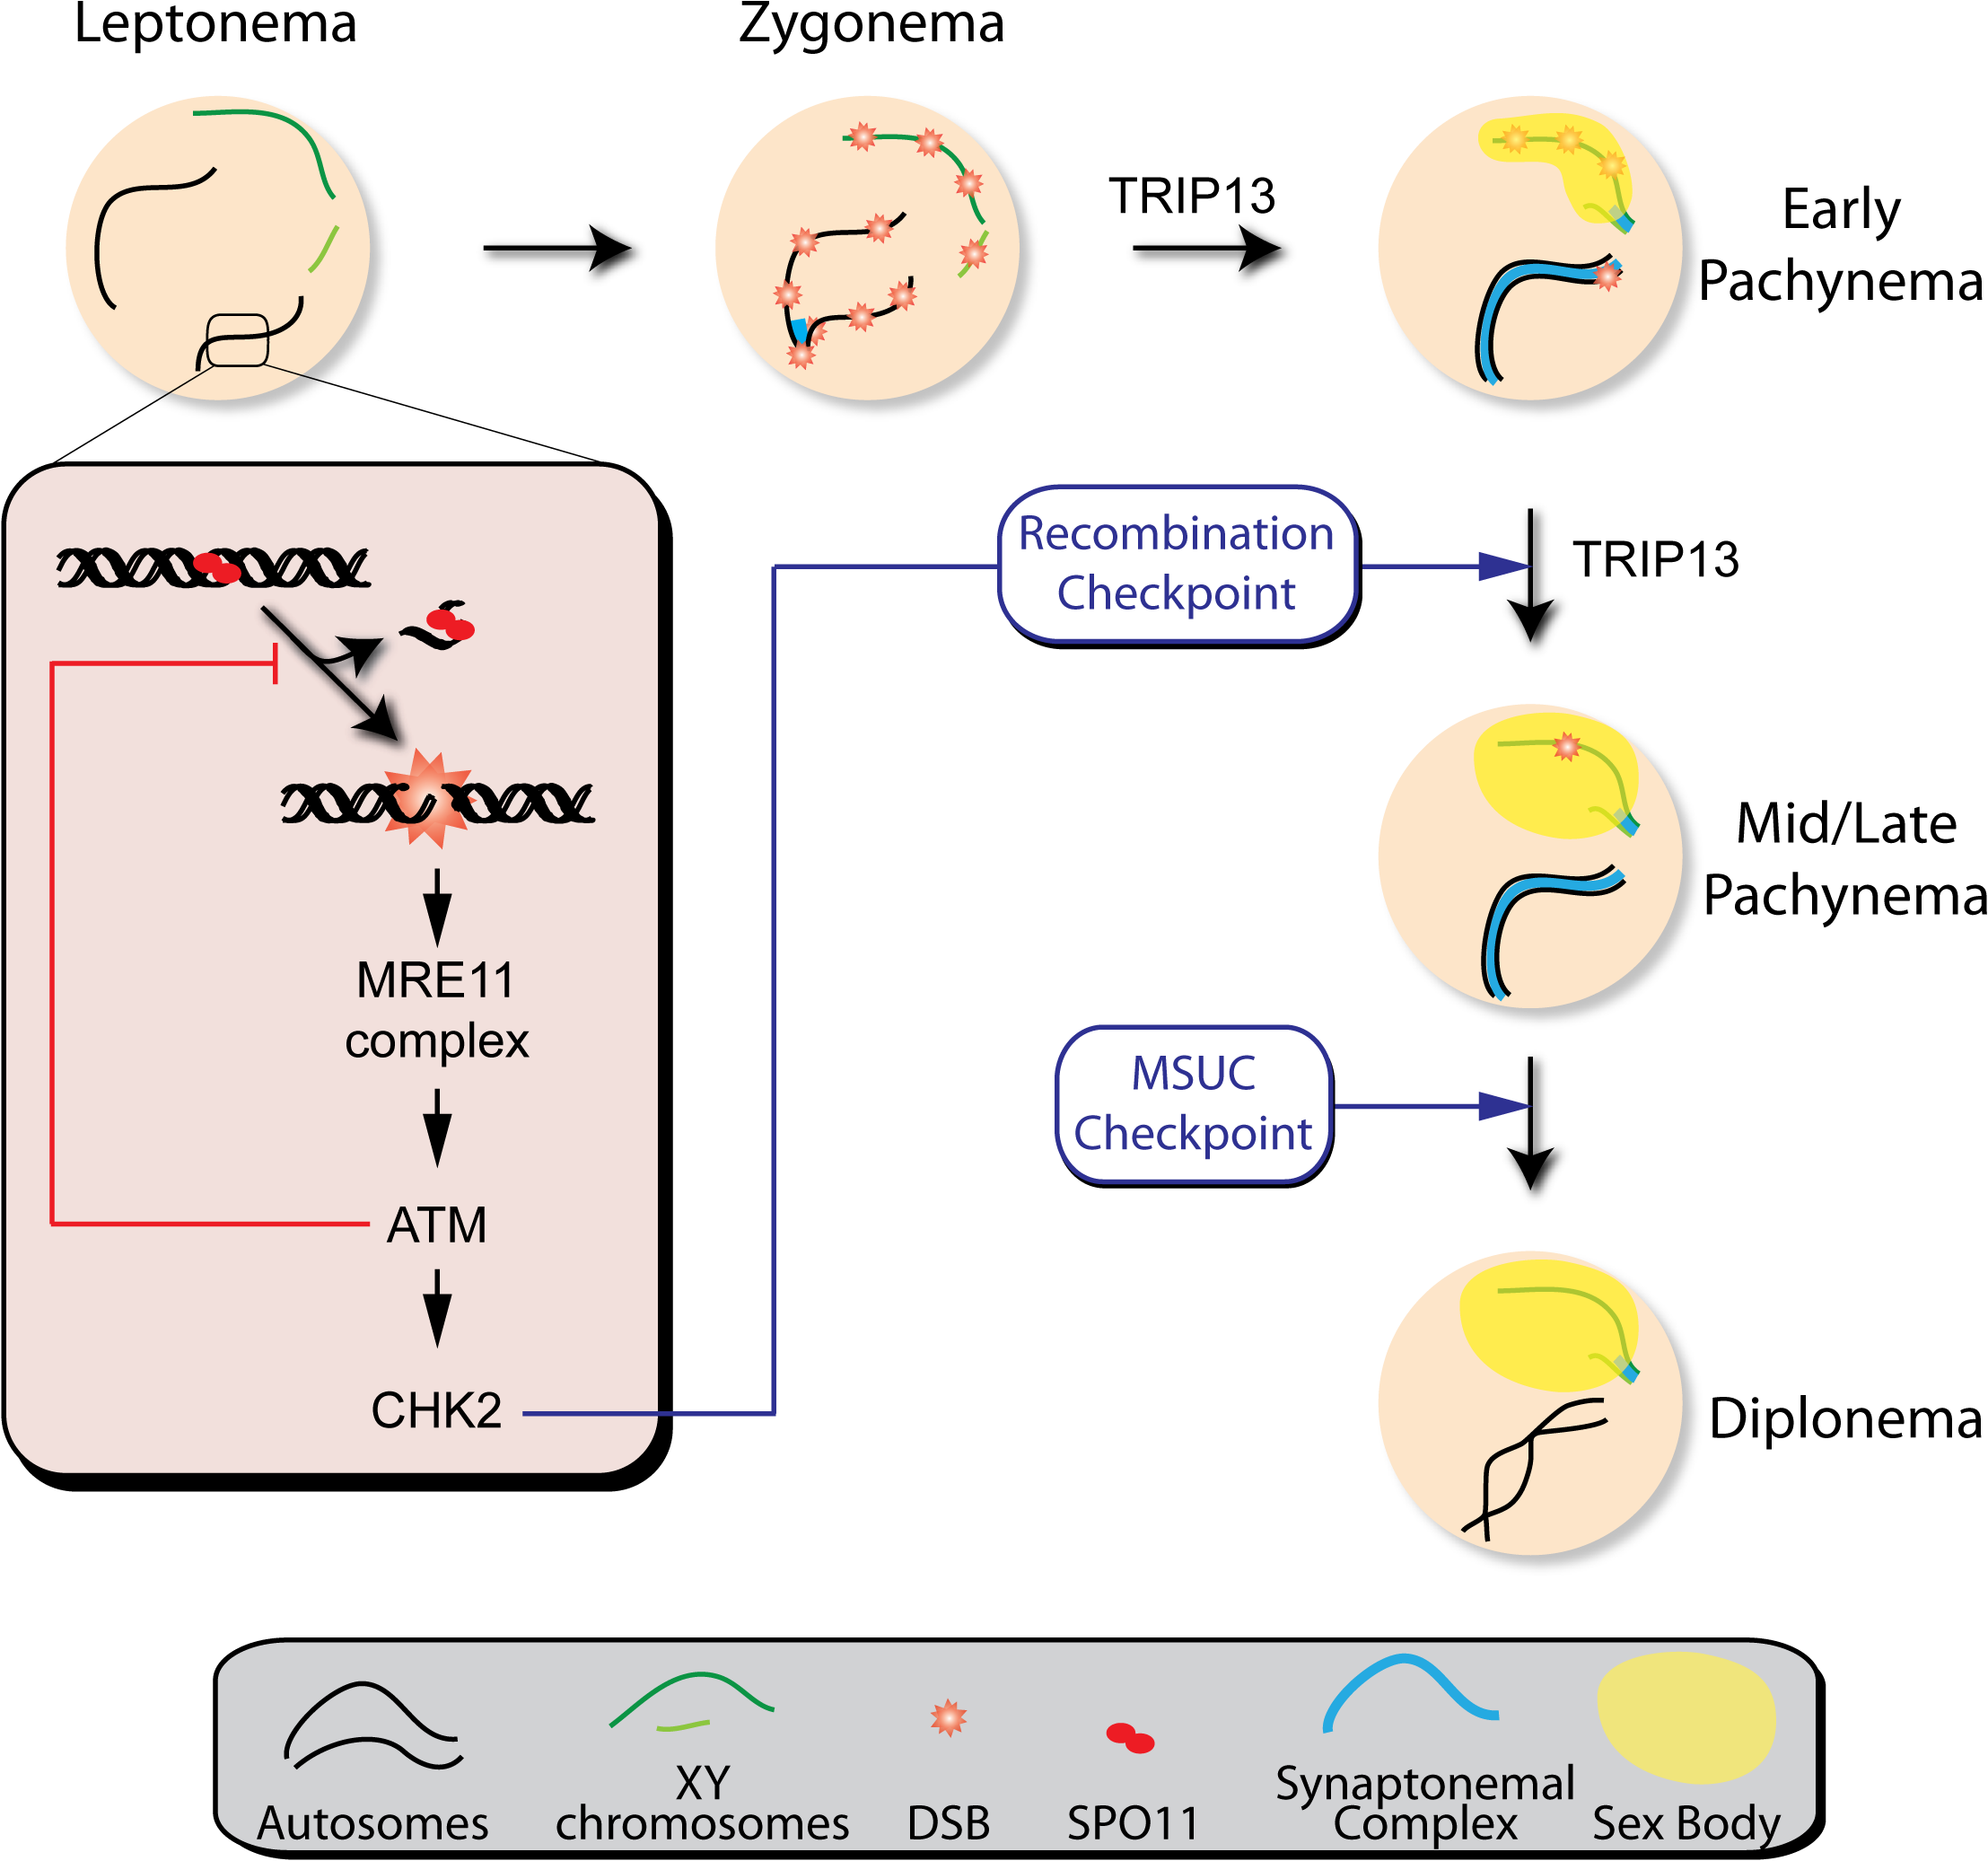 Functions of the ATM signaling pathway during mouse meiotic prophase.